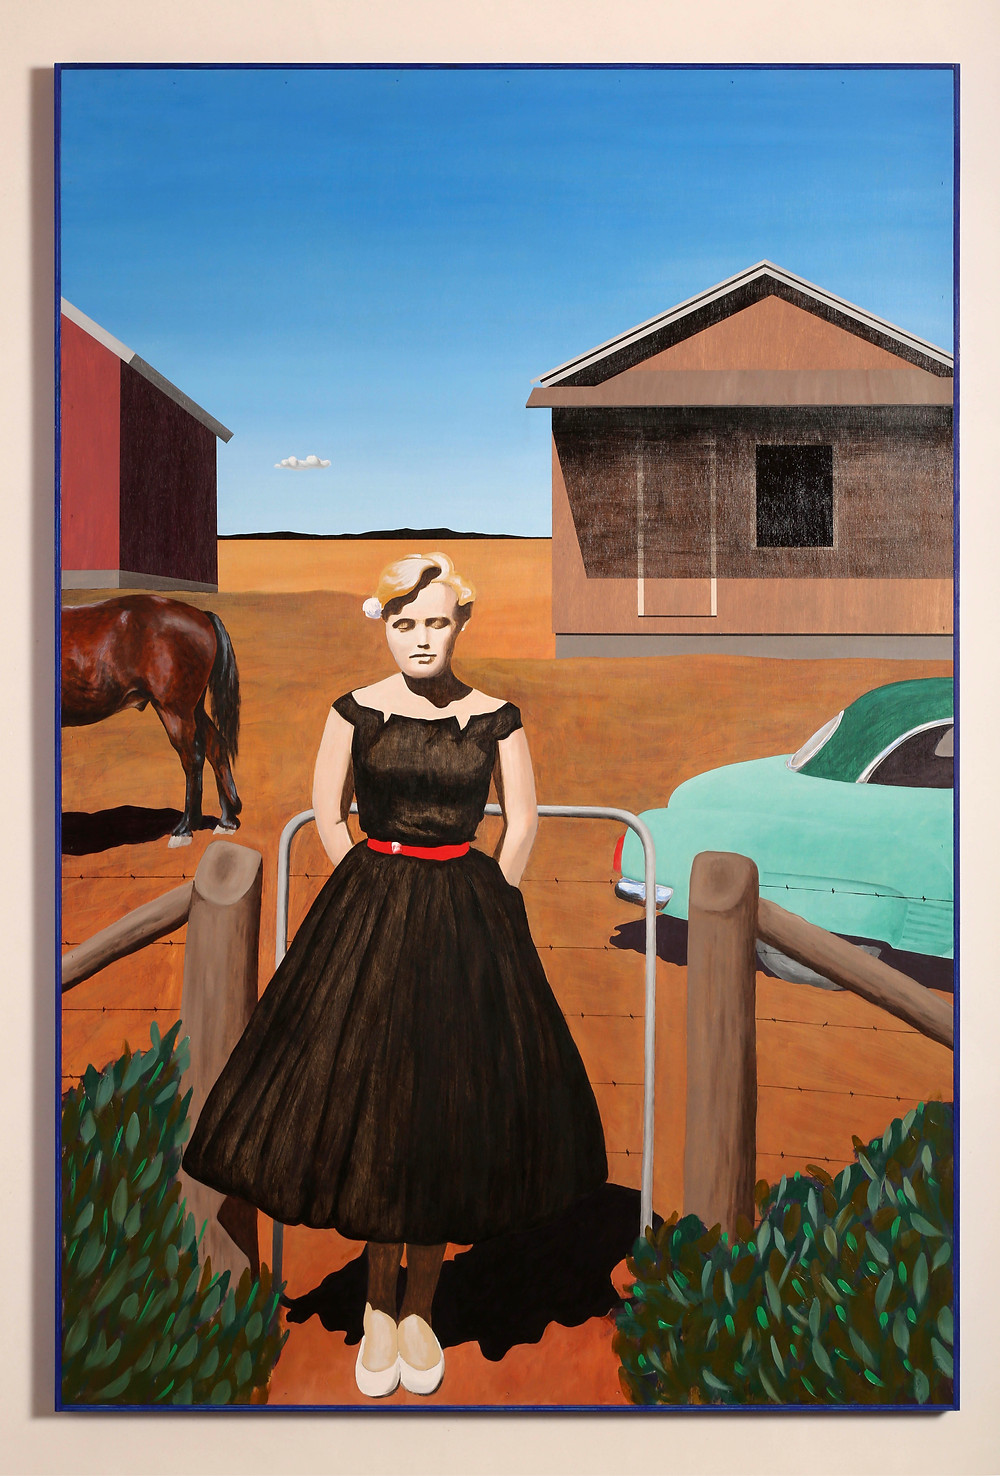 Women dressed in black dress standing in front of a ranch.